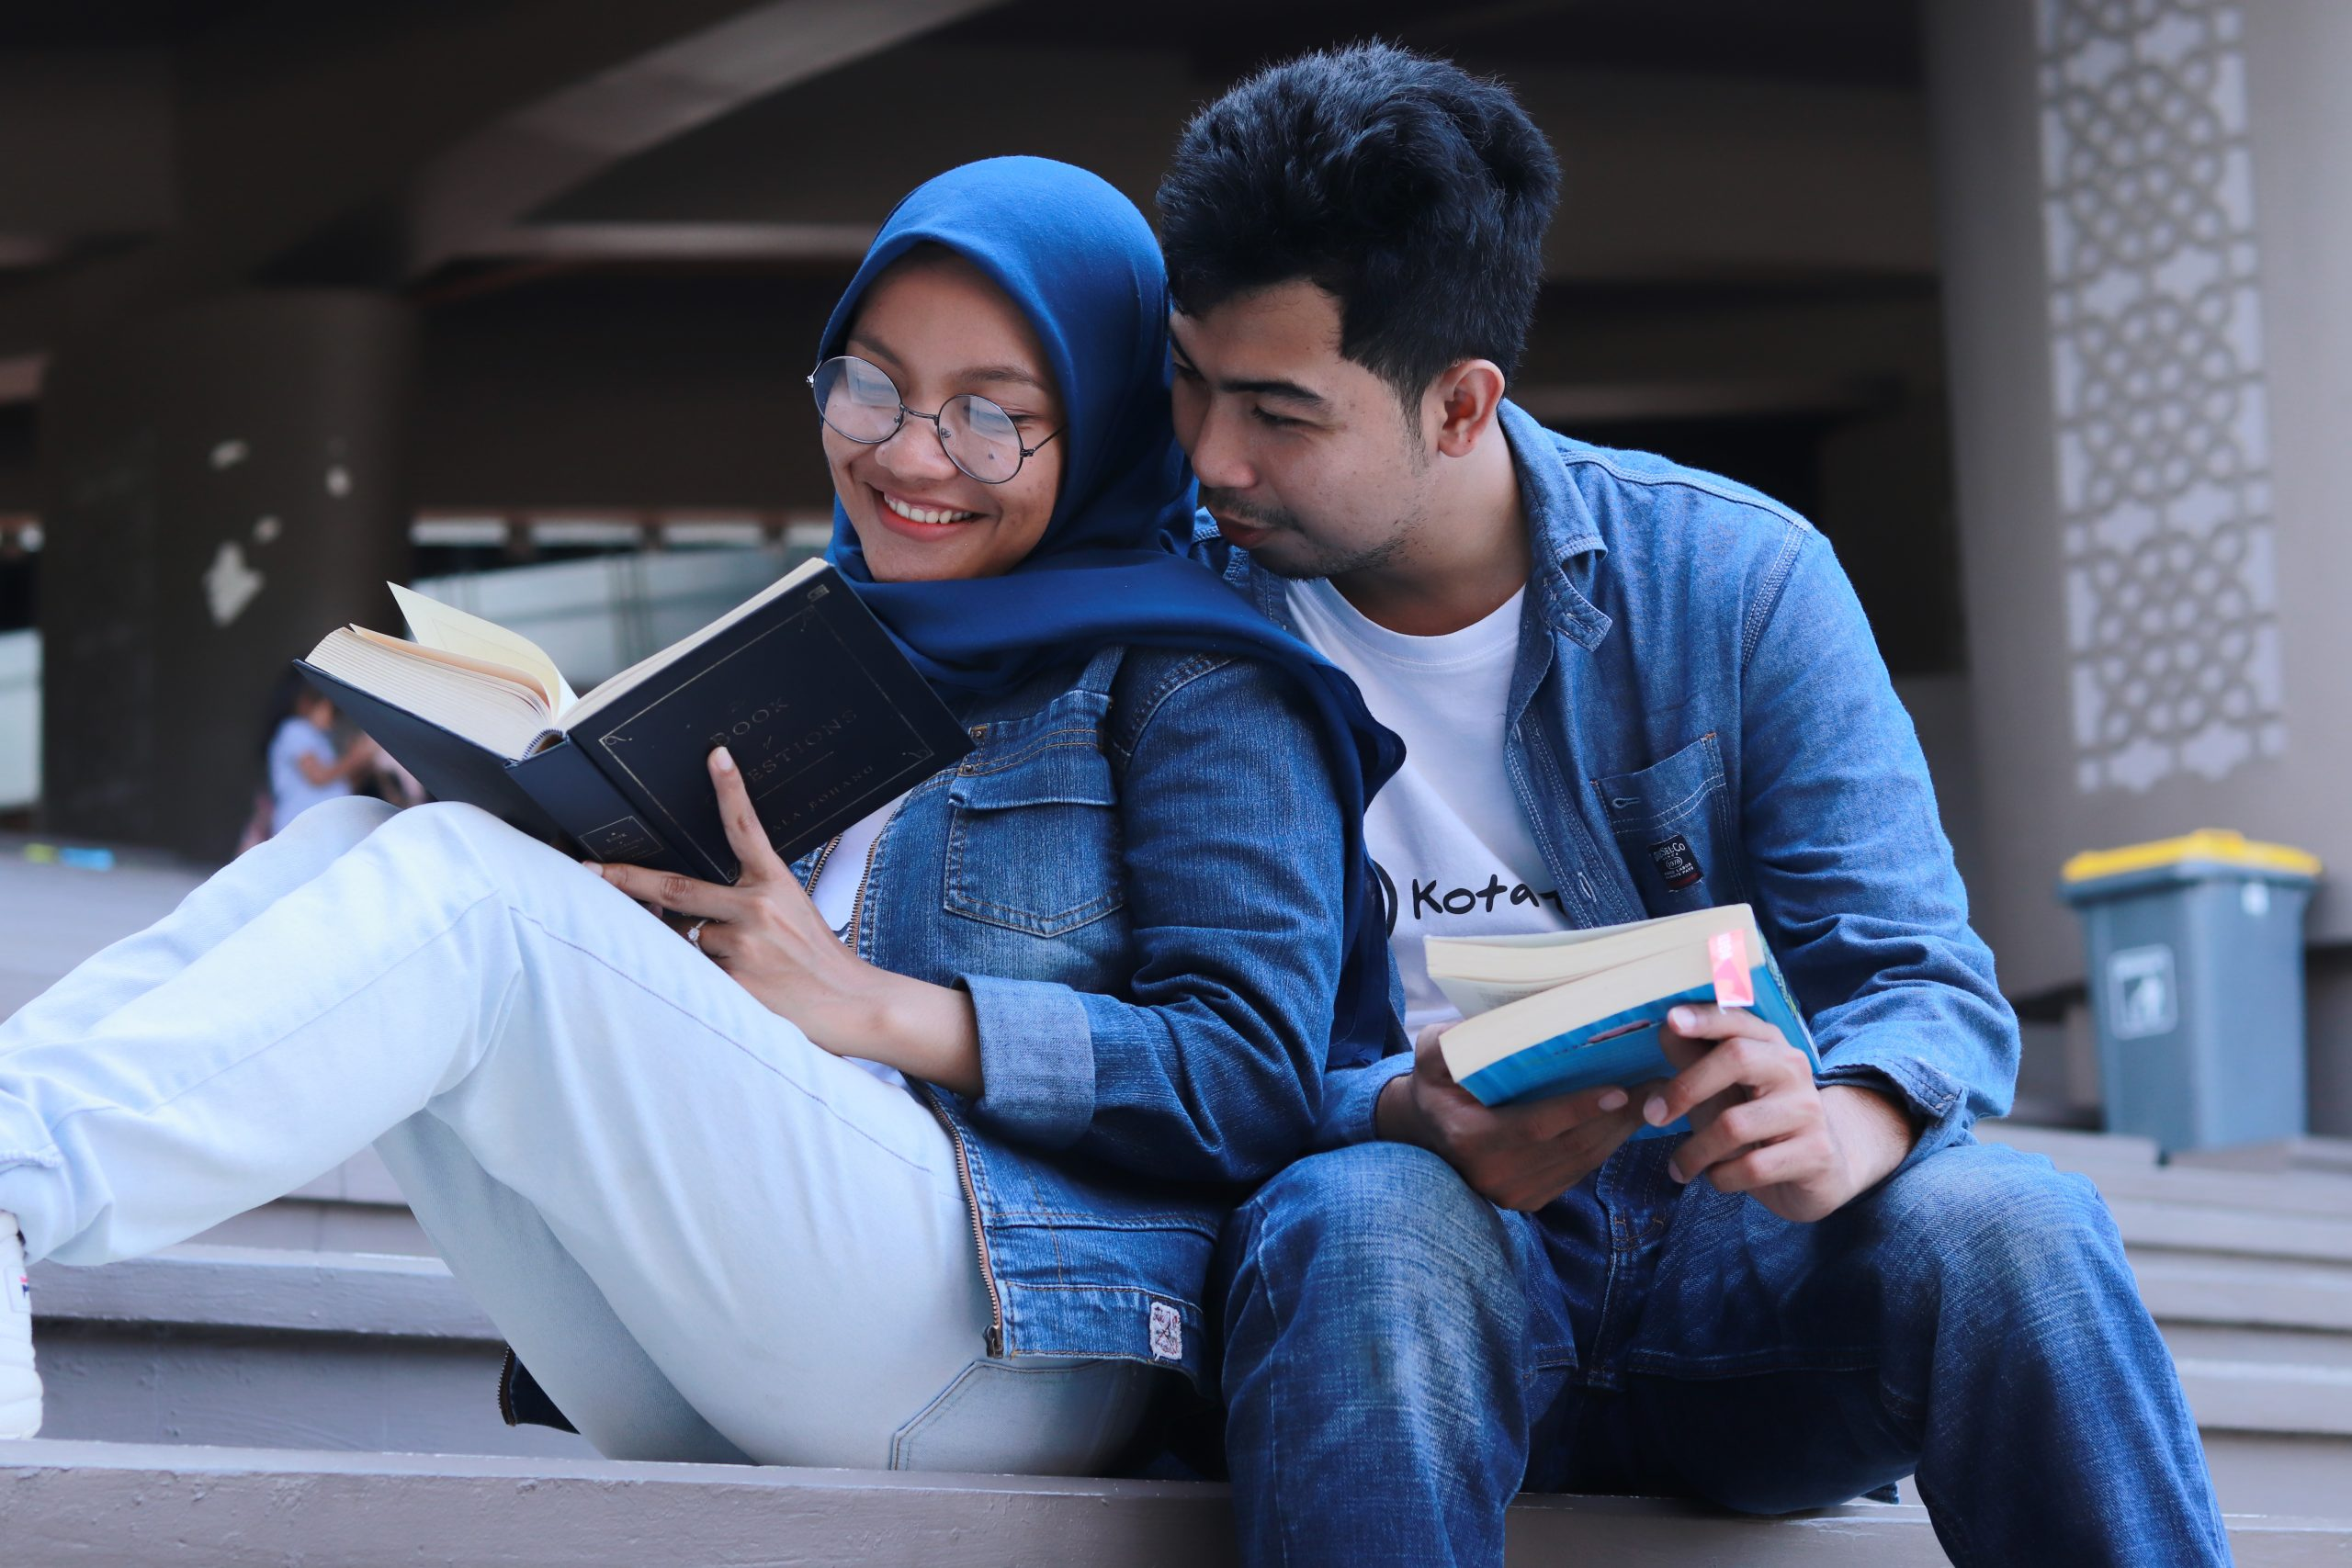 """Image of two people wearing denim outfits reading outdoors together. This image represents the happiness you can find after seeking depression treatment in New York City for a depressive episode. Those searching """"how to deal with depression"""" can benefit from meeting with a depression therapist in New York City. 11211   10010   10003"""